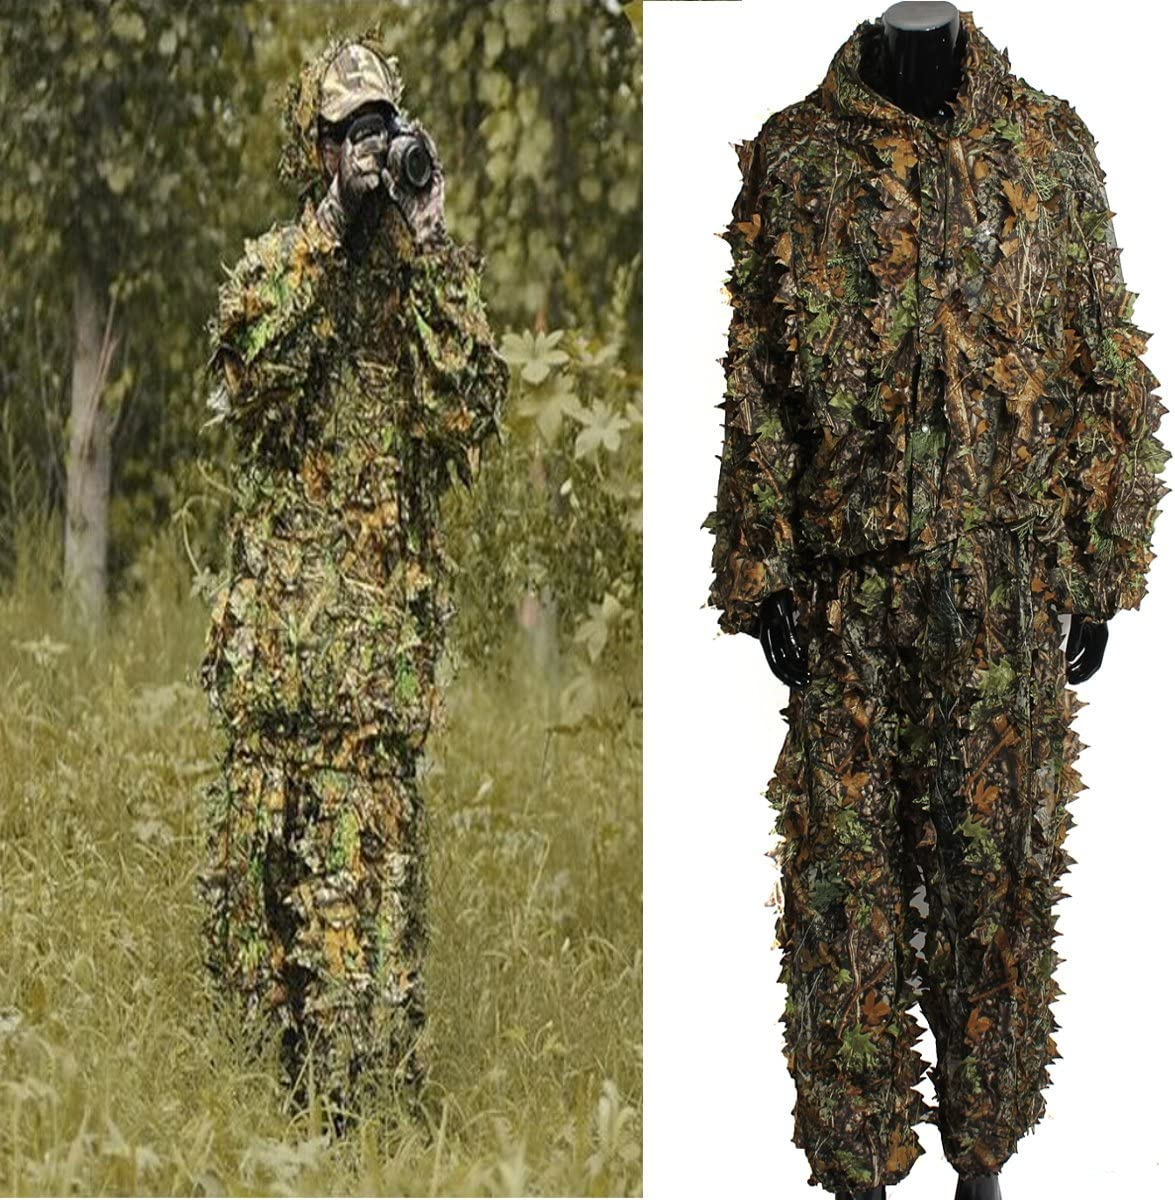 OUTERDO Camo Suits Ghillie Suits 3D Leaves Woodland Camouflage Clothing Army Sniper Military Clothes and Pants for Jungle Hunting, Shooting, Airsoft, Wildlife Photography, Halloween : Sports & Outdoors